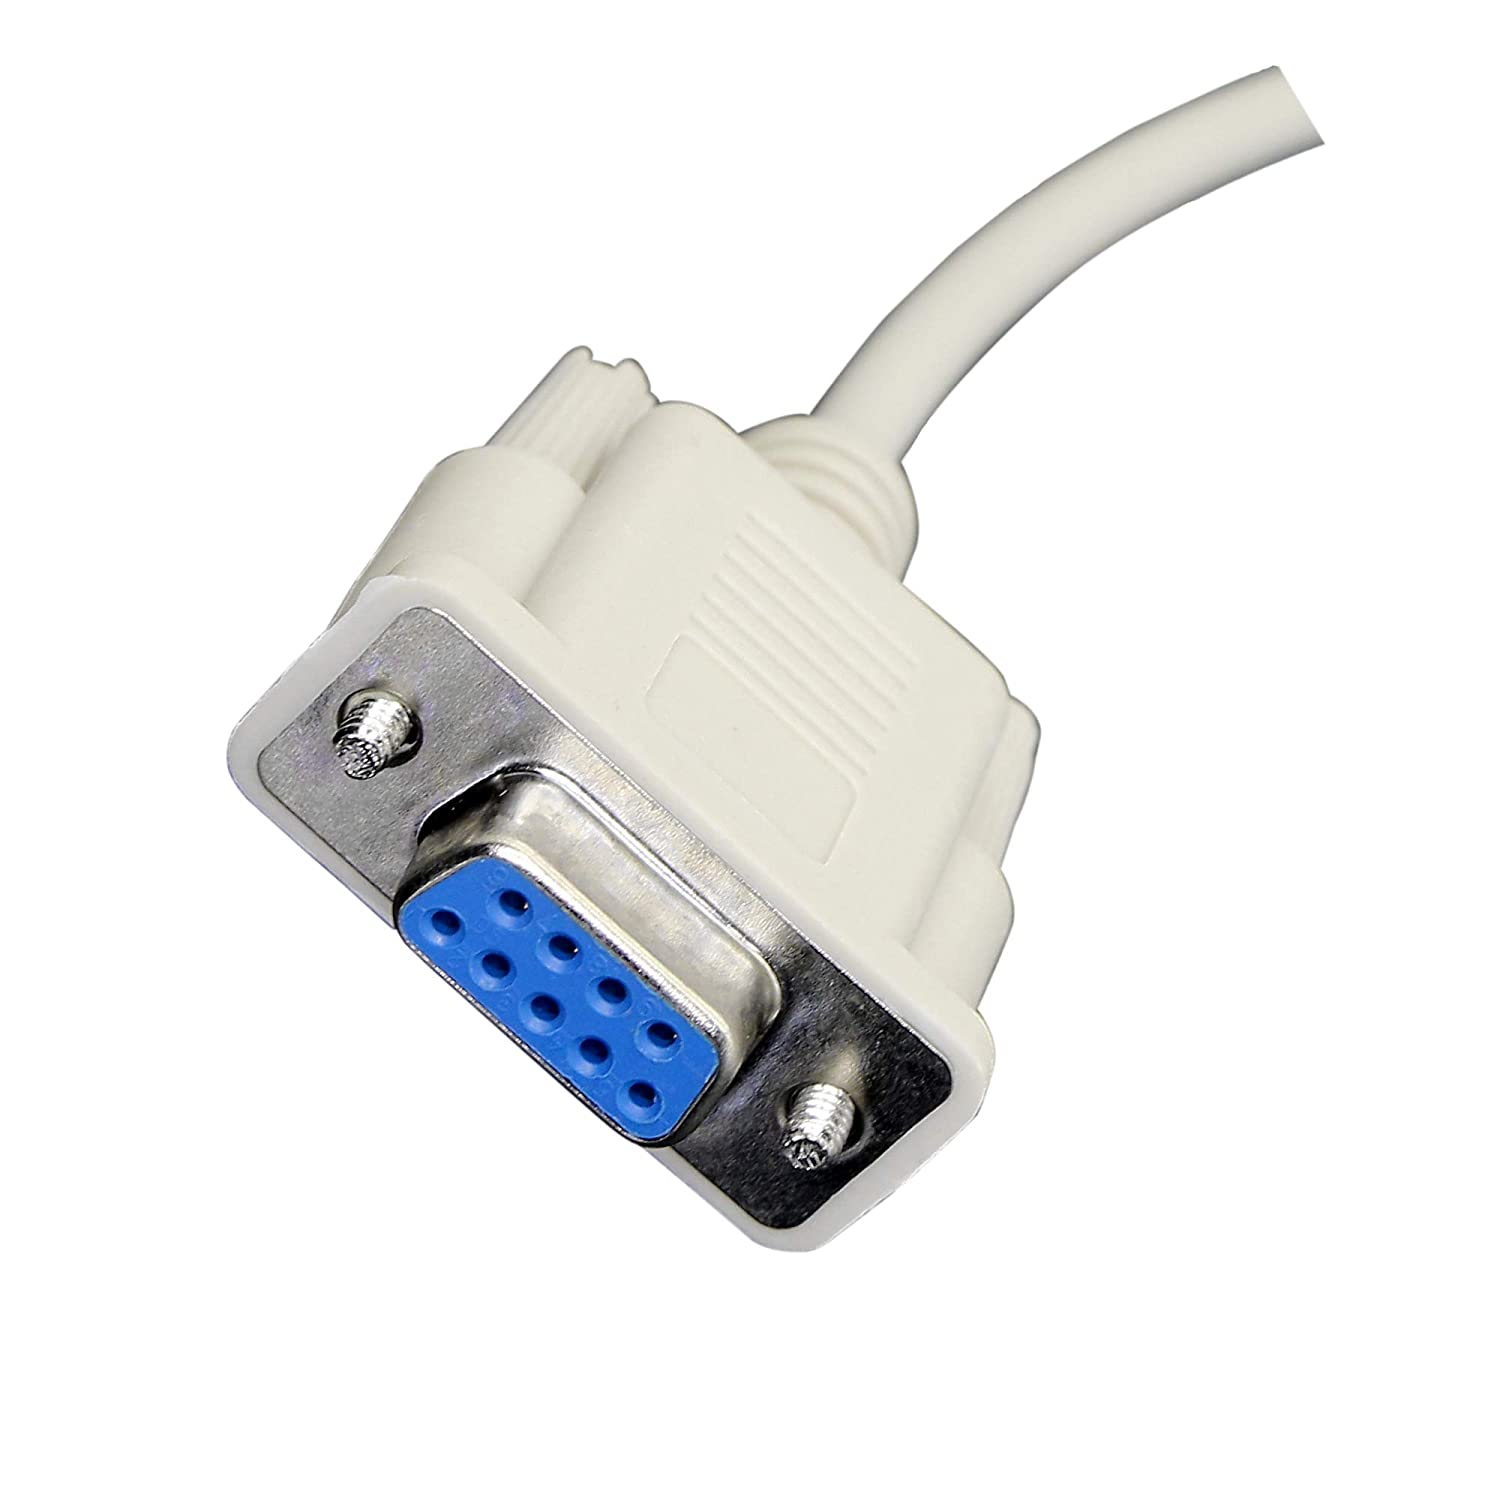 Scanners Printers 4.5Ft RS232 DB9 9pin Data Serial Cable Male to Female DB9 Extension Cable KANGPING for Computers